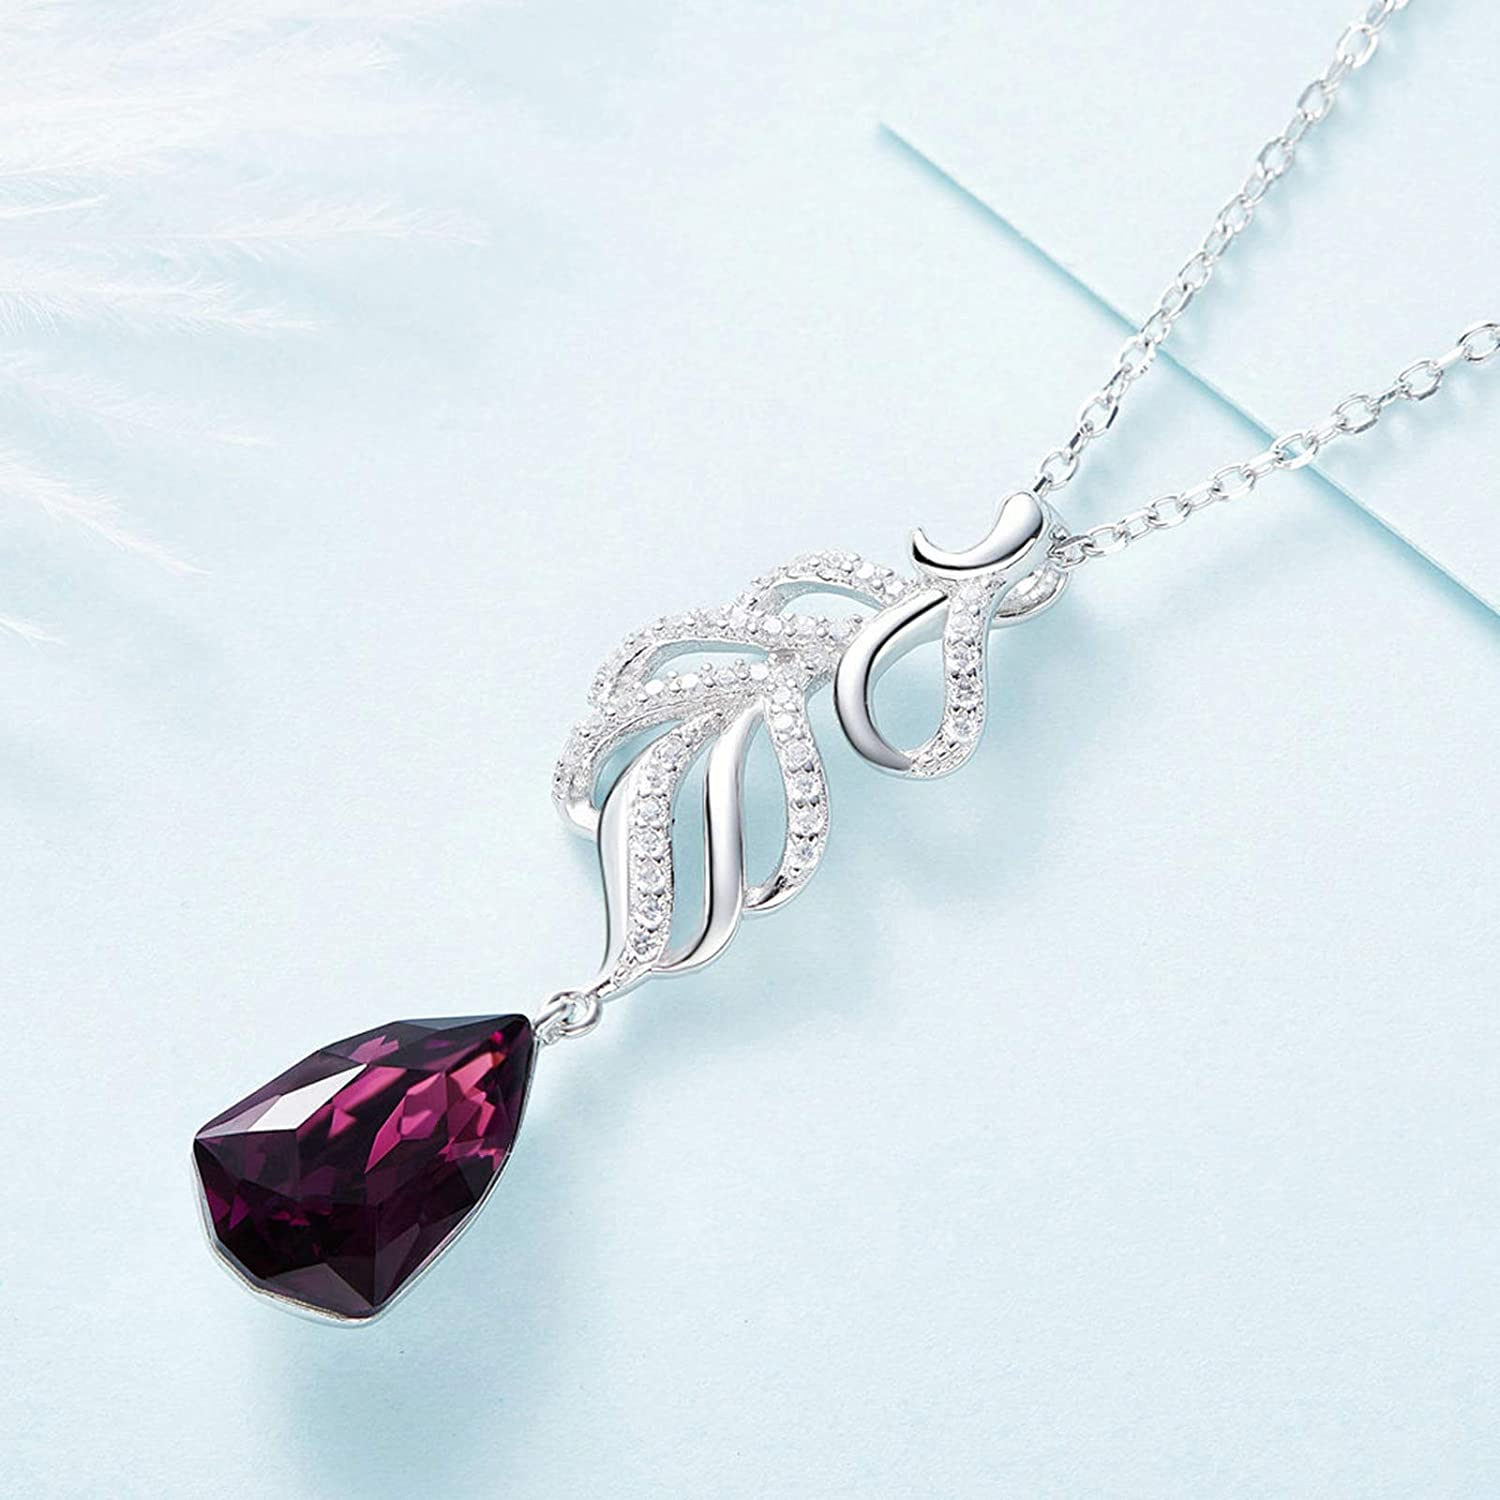 Aooaz Silver Material Necklace Womens Girls Feather Pendant Necklaces Silver Anniversary